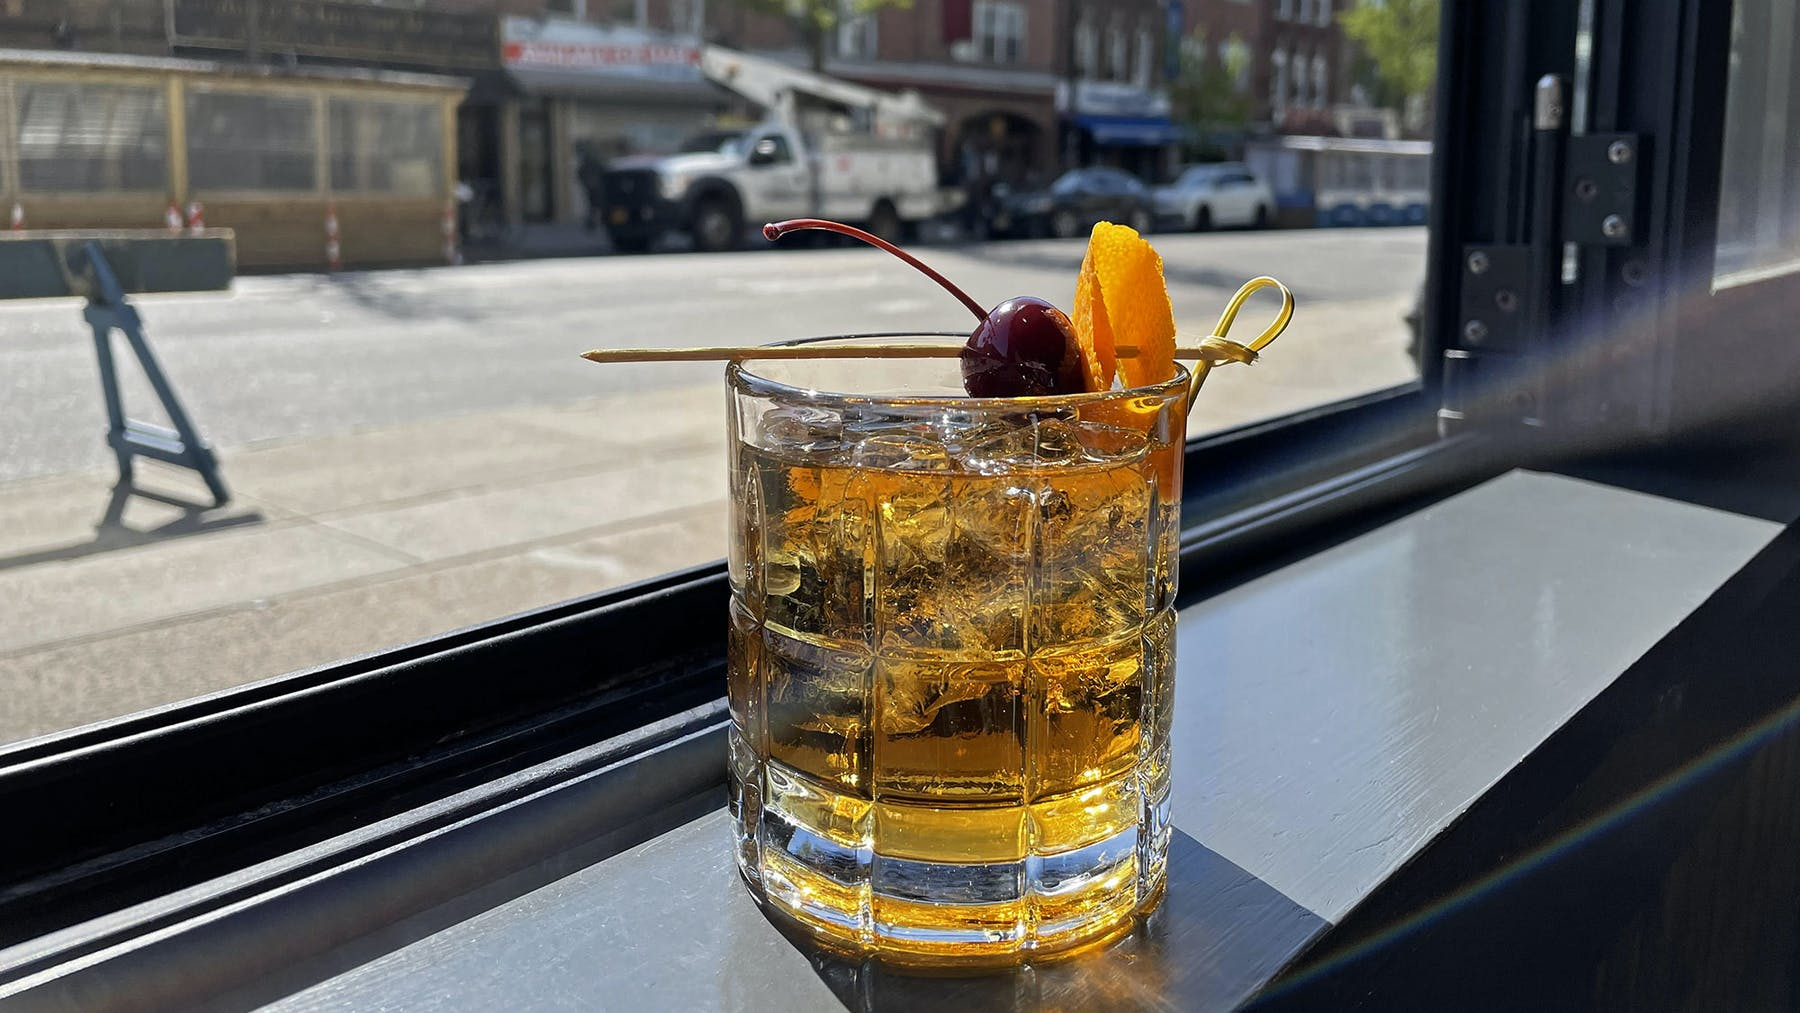 a glass of our Rivercrest Old Fashioned on a window ledge